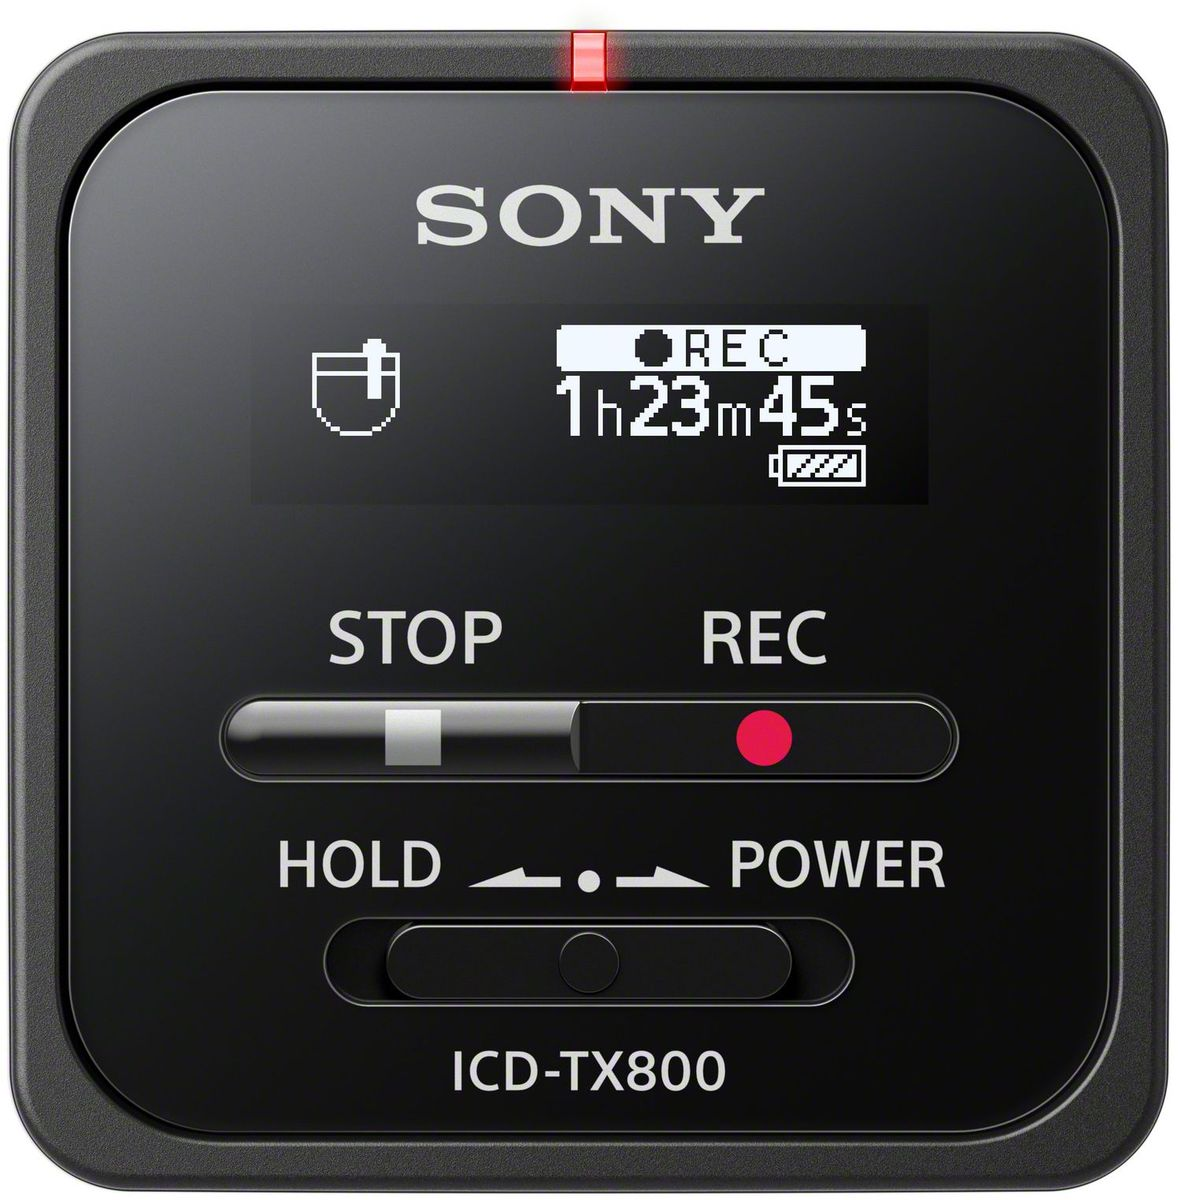 Sony ICD-TX800, Black диктофон диктофон sony icd px470